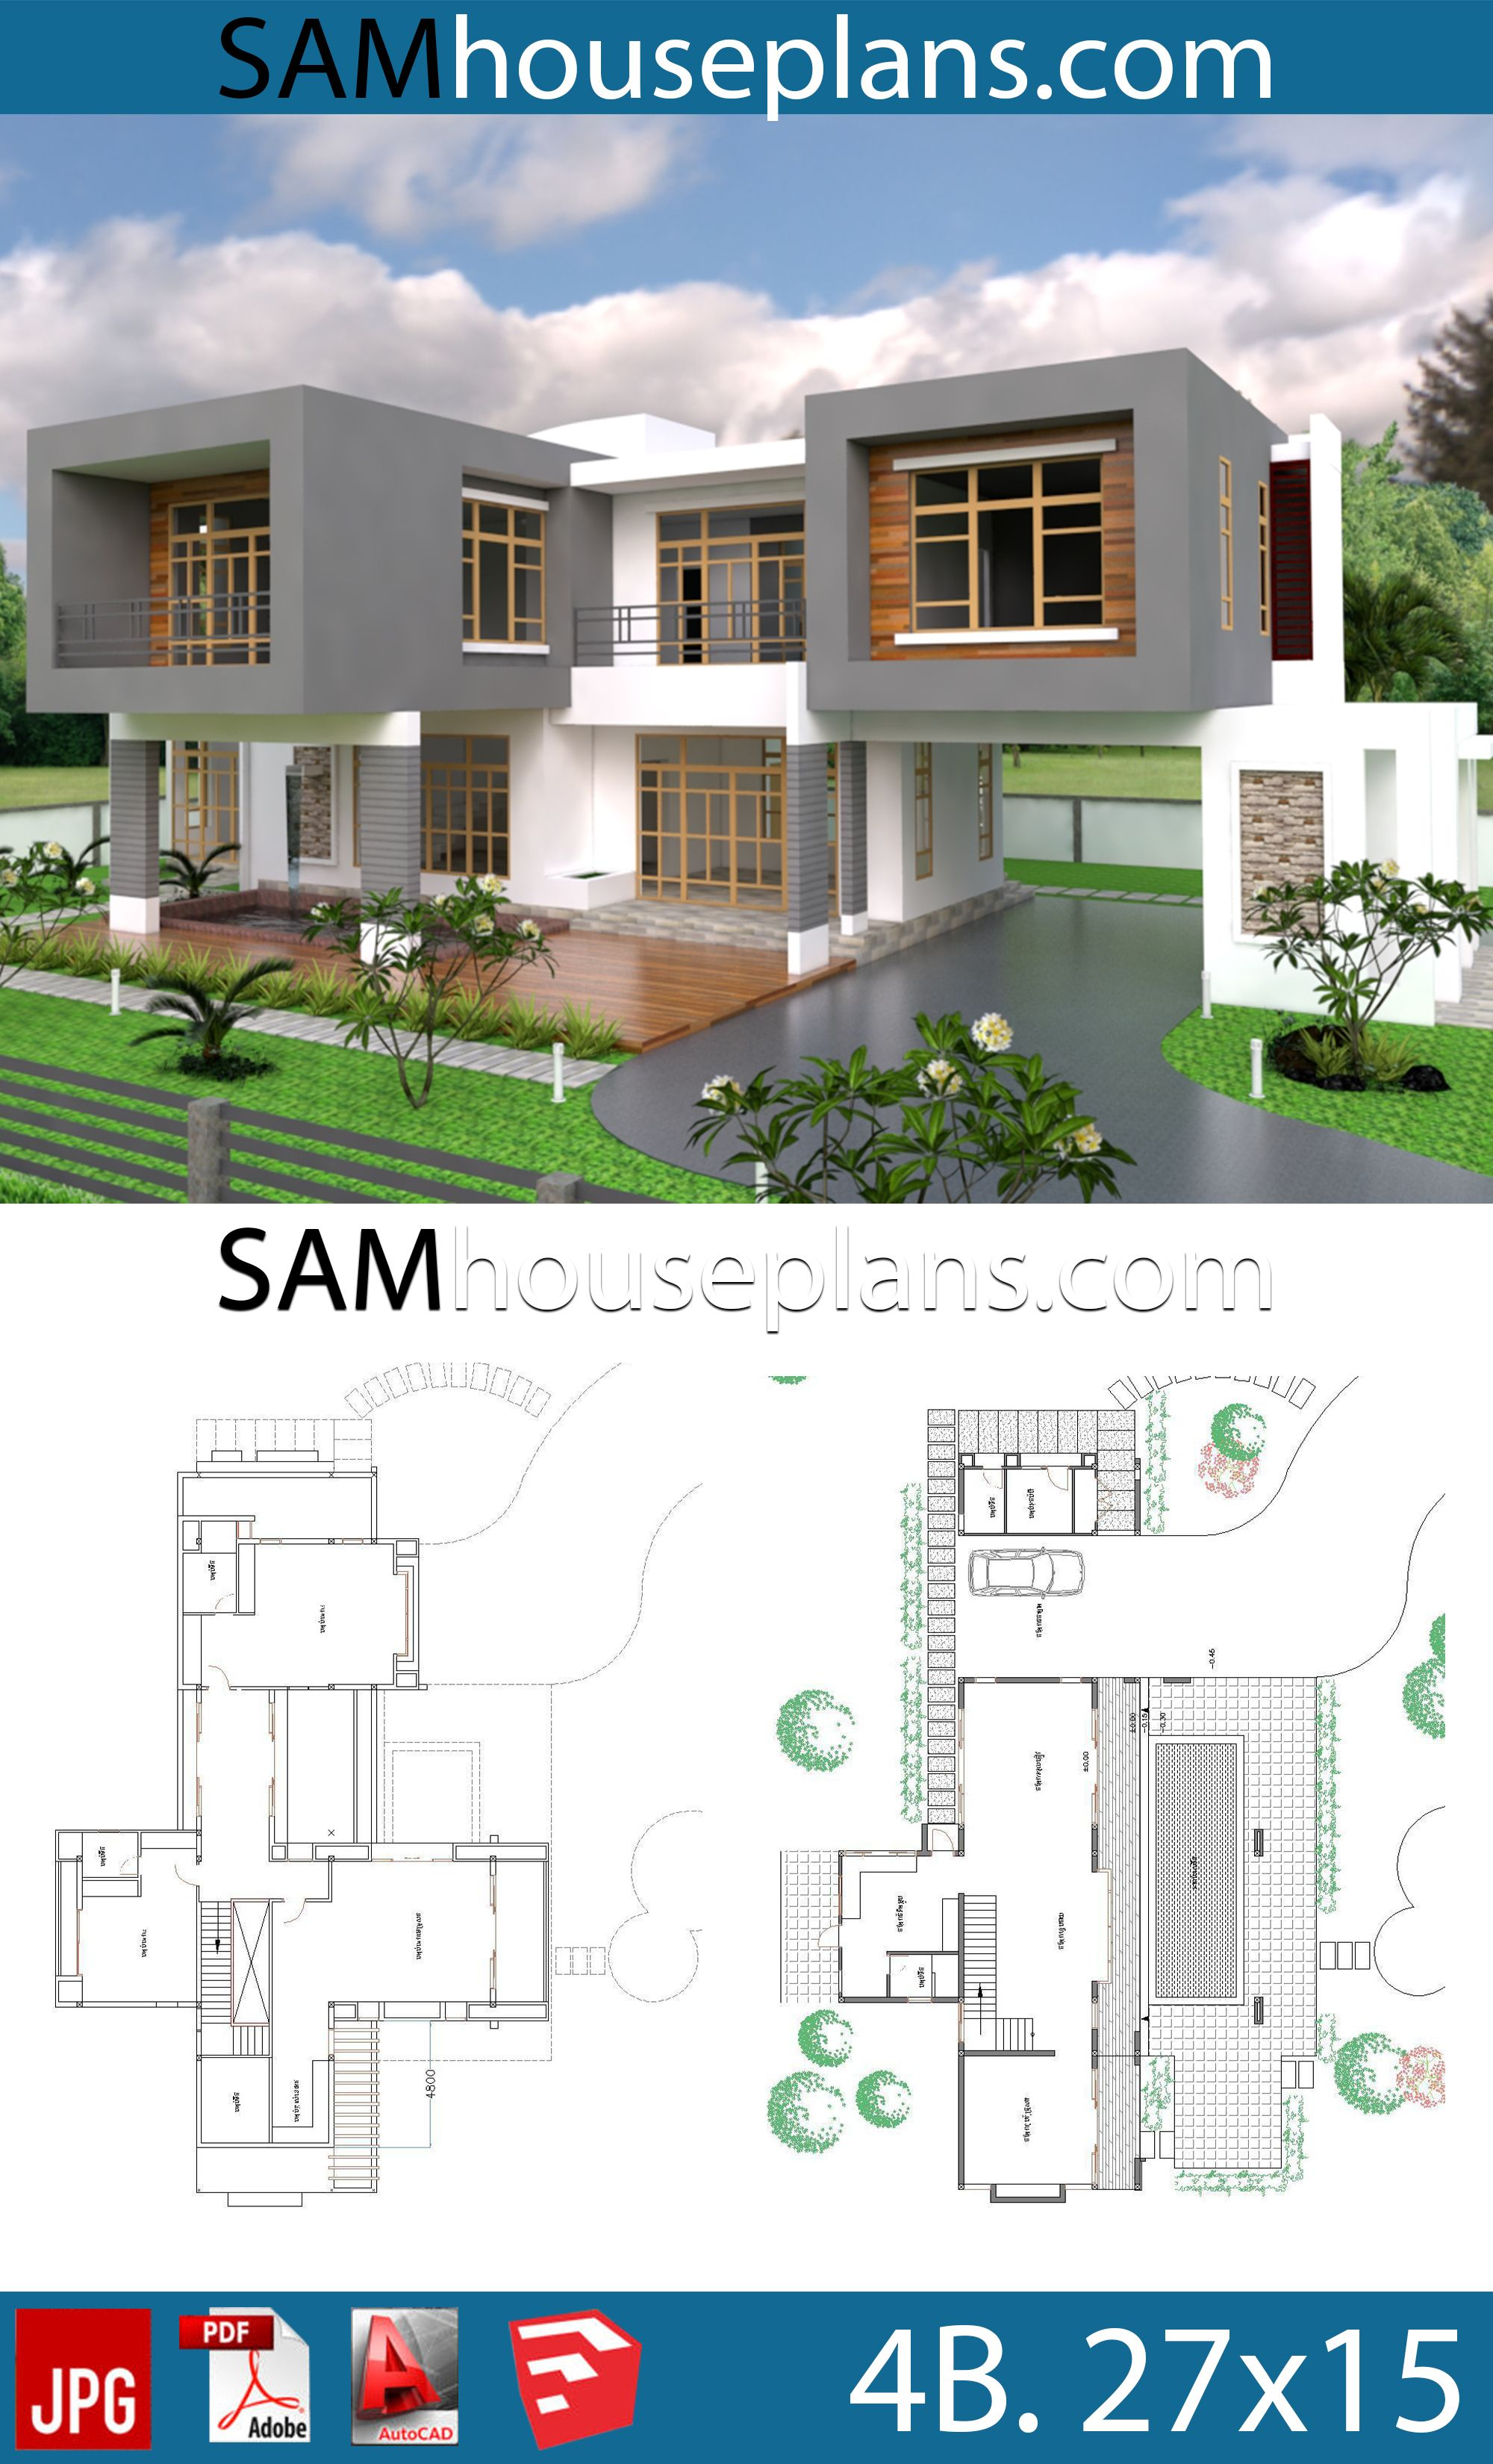 House Plans 27x15 With 4 Bedrooms House Plans Free Downloads Modern House Plans Modern House Floor Plans House Plans